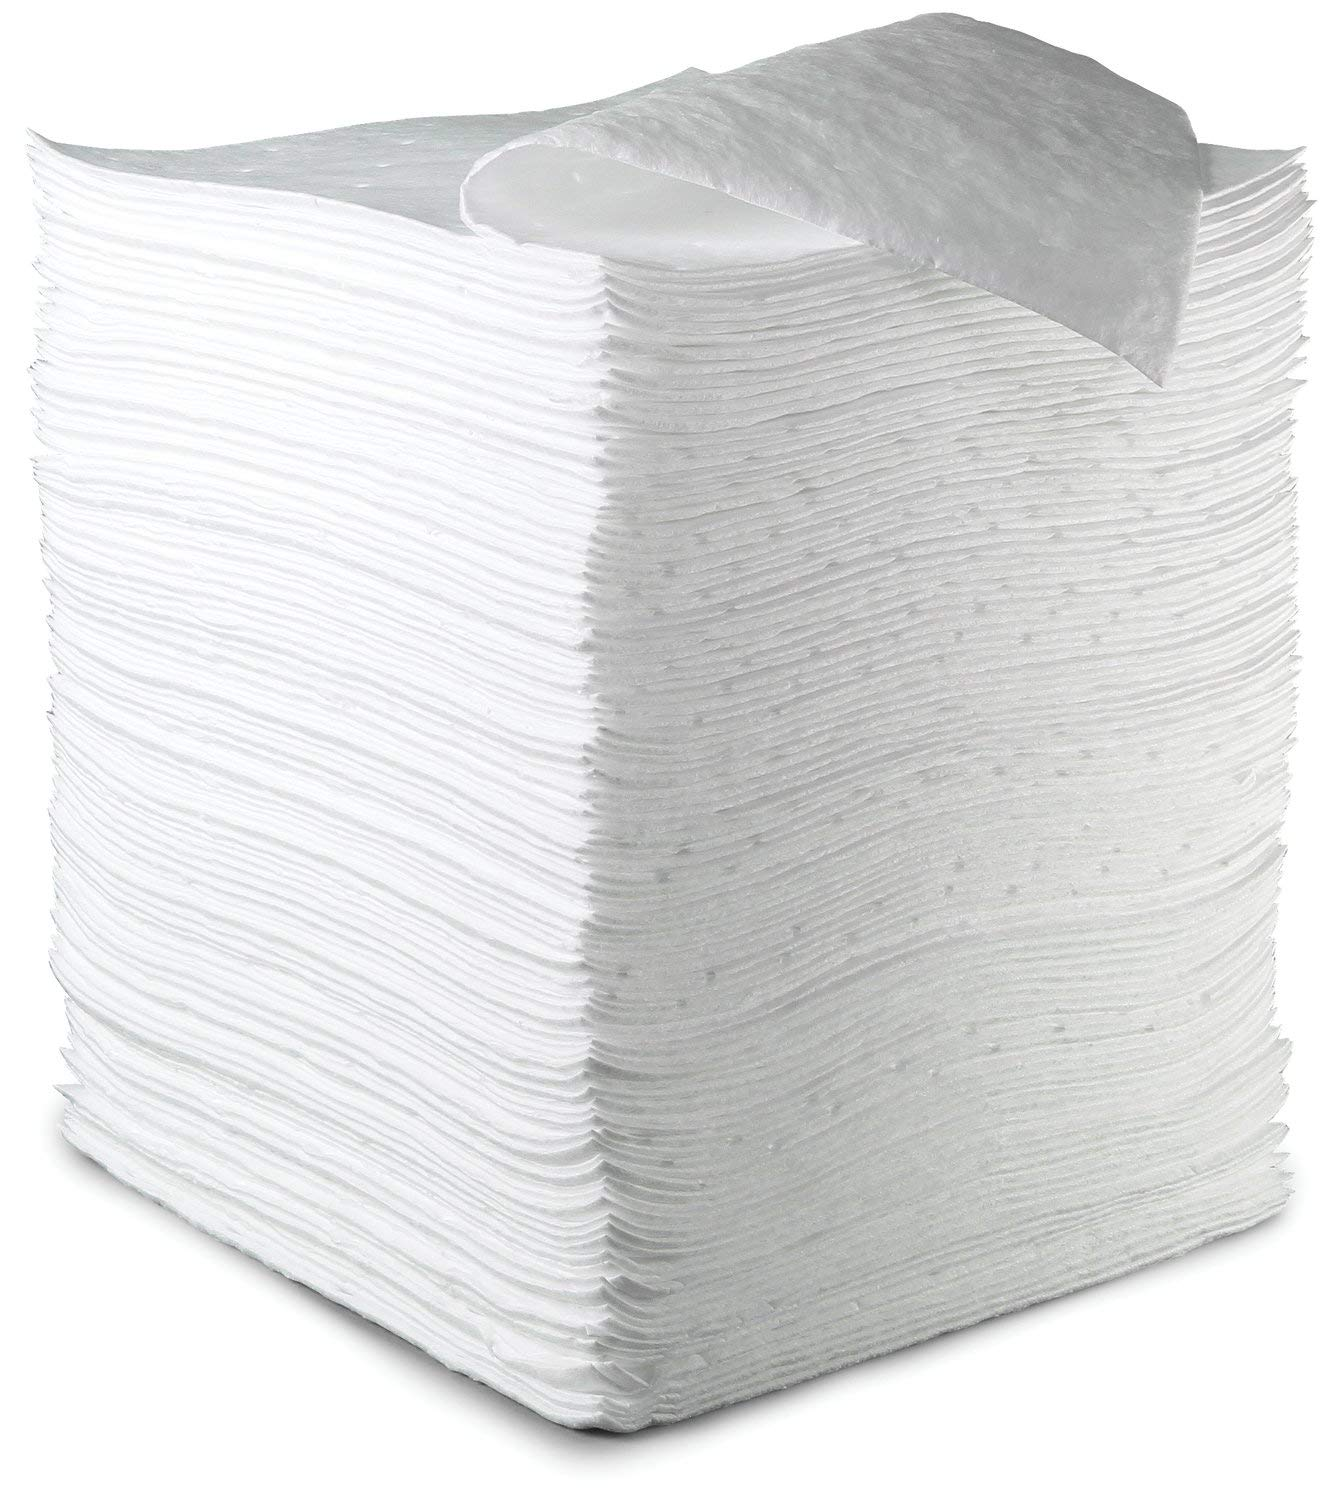 3M Petroleum Sorbent Pad HP-156, 17'' Length x 19'' Width, 37.5 Gallons Absorption Capacity (Case of 100)